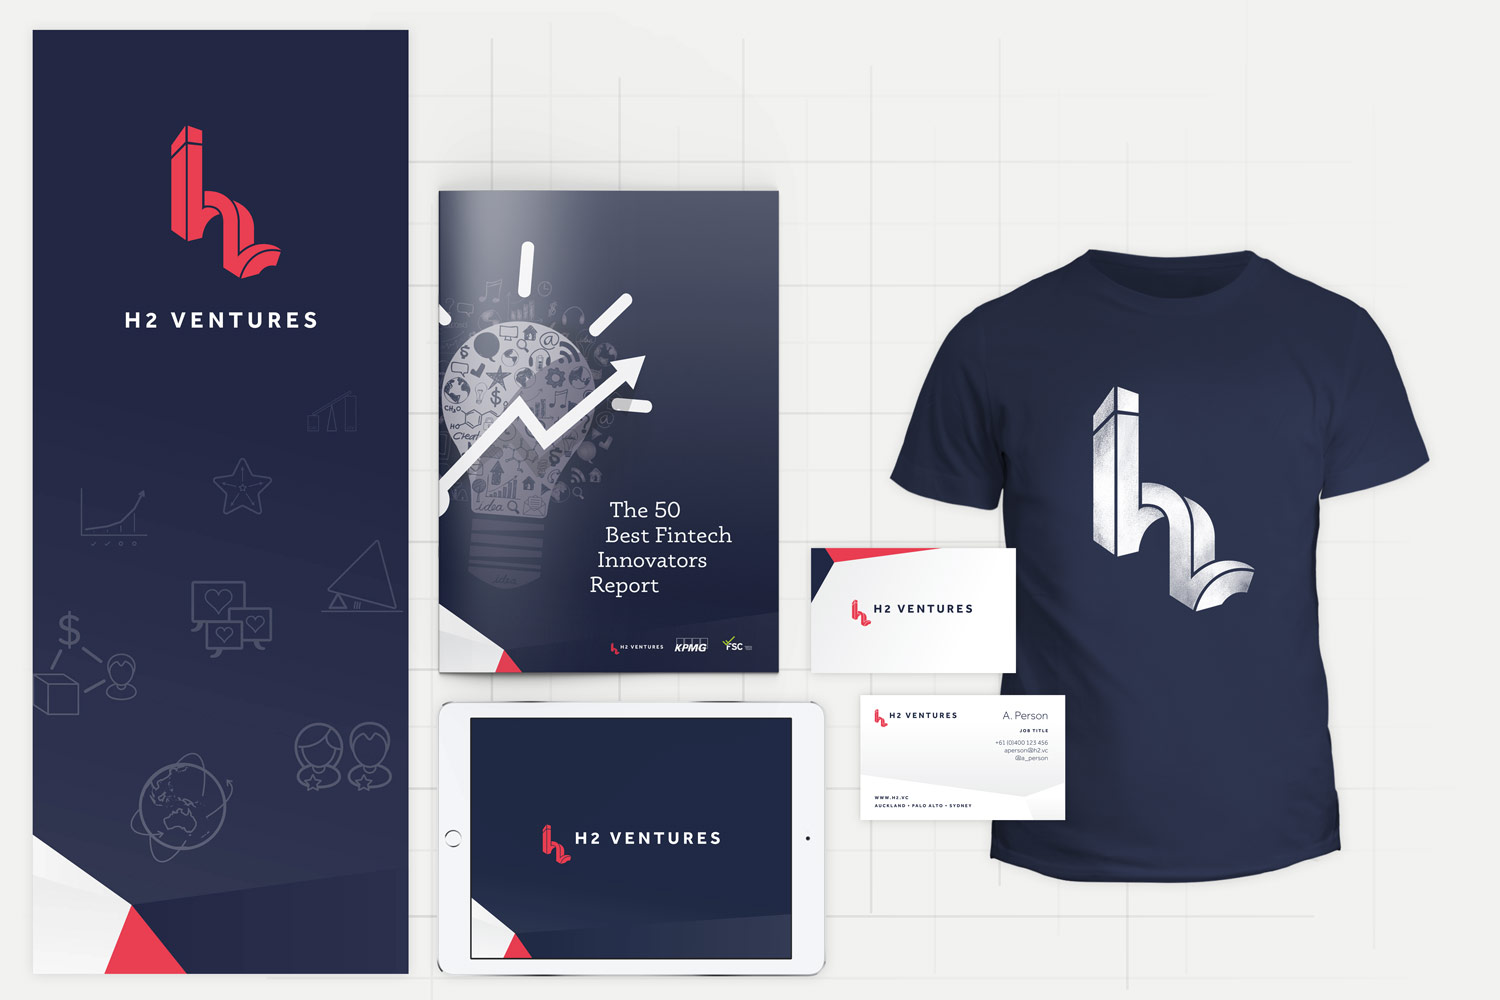 H2 Ventures brand design by Theysaurus